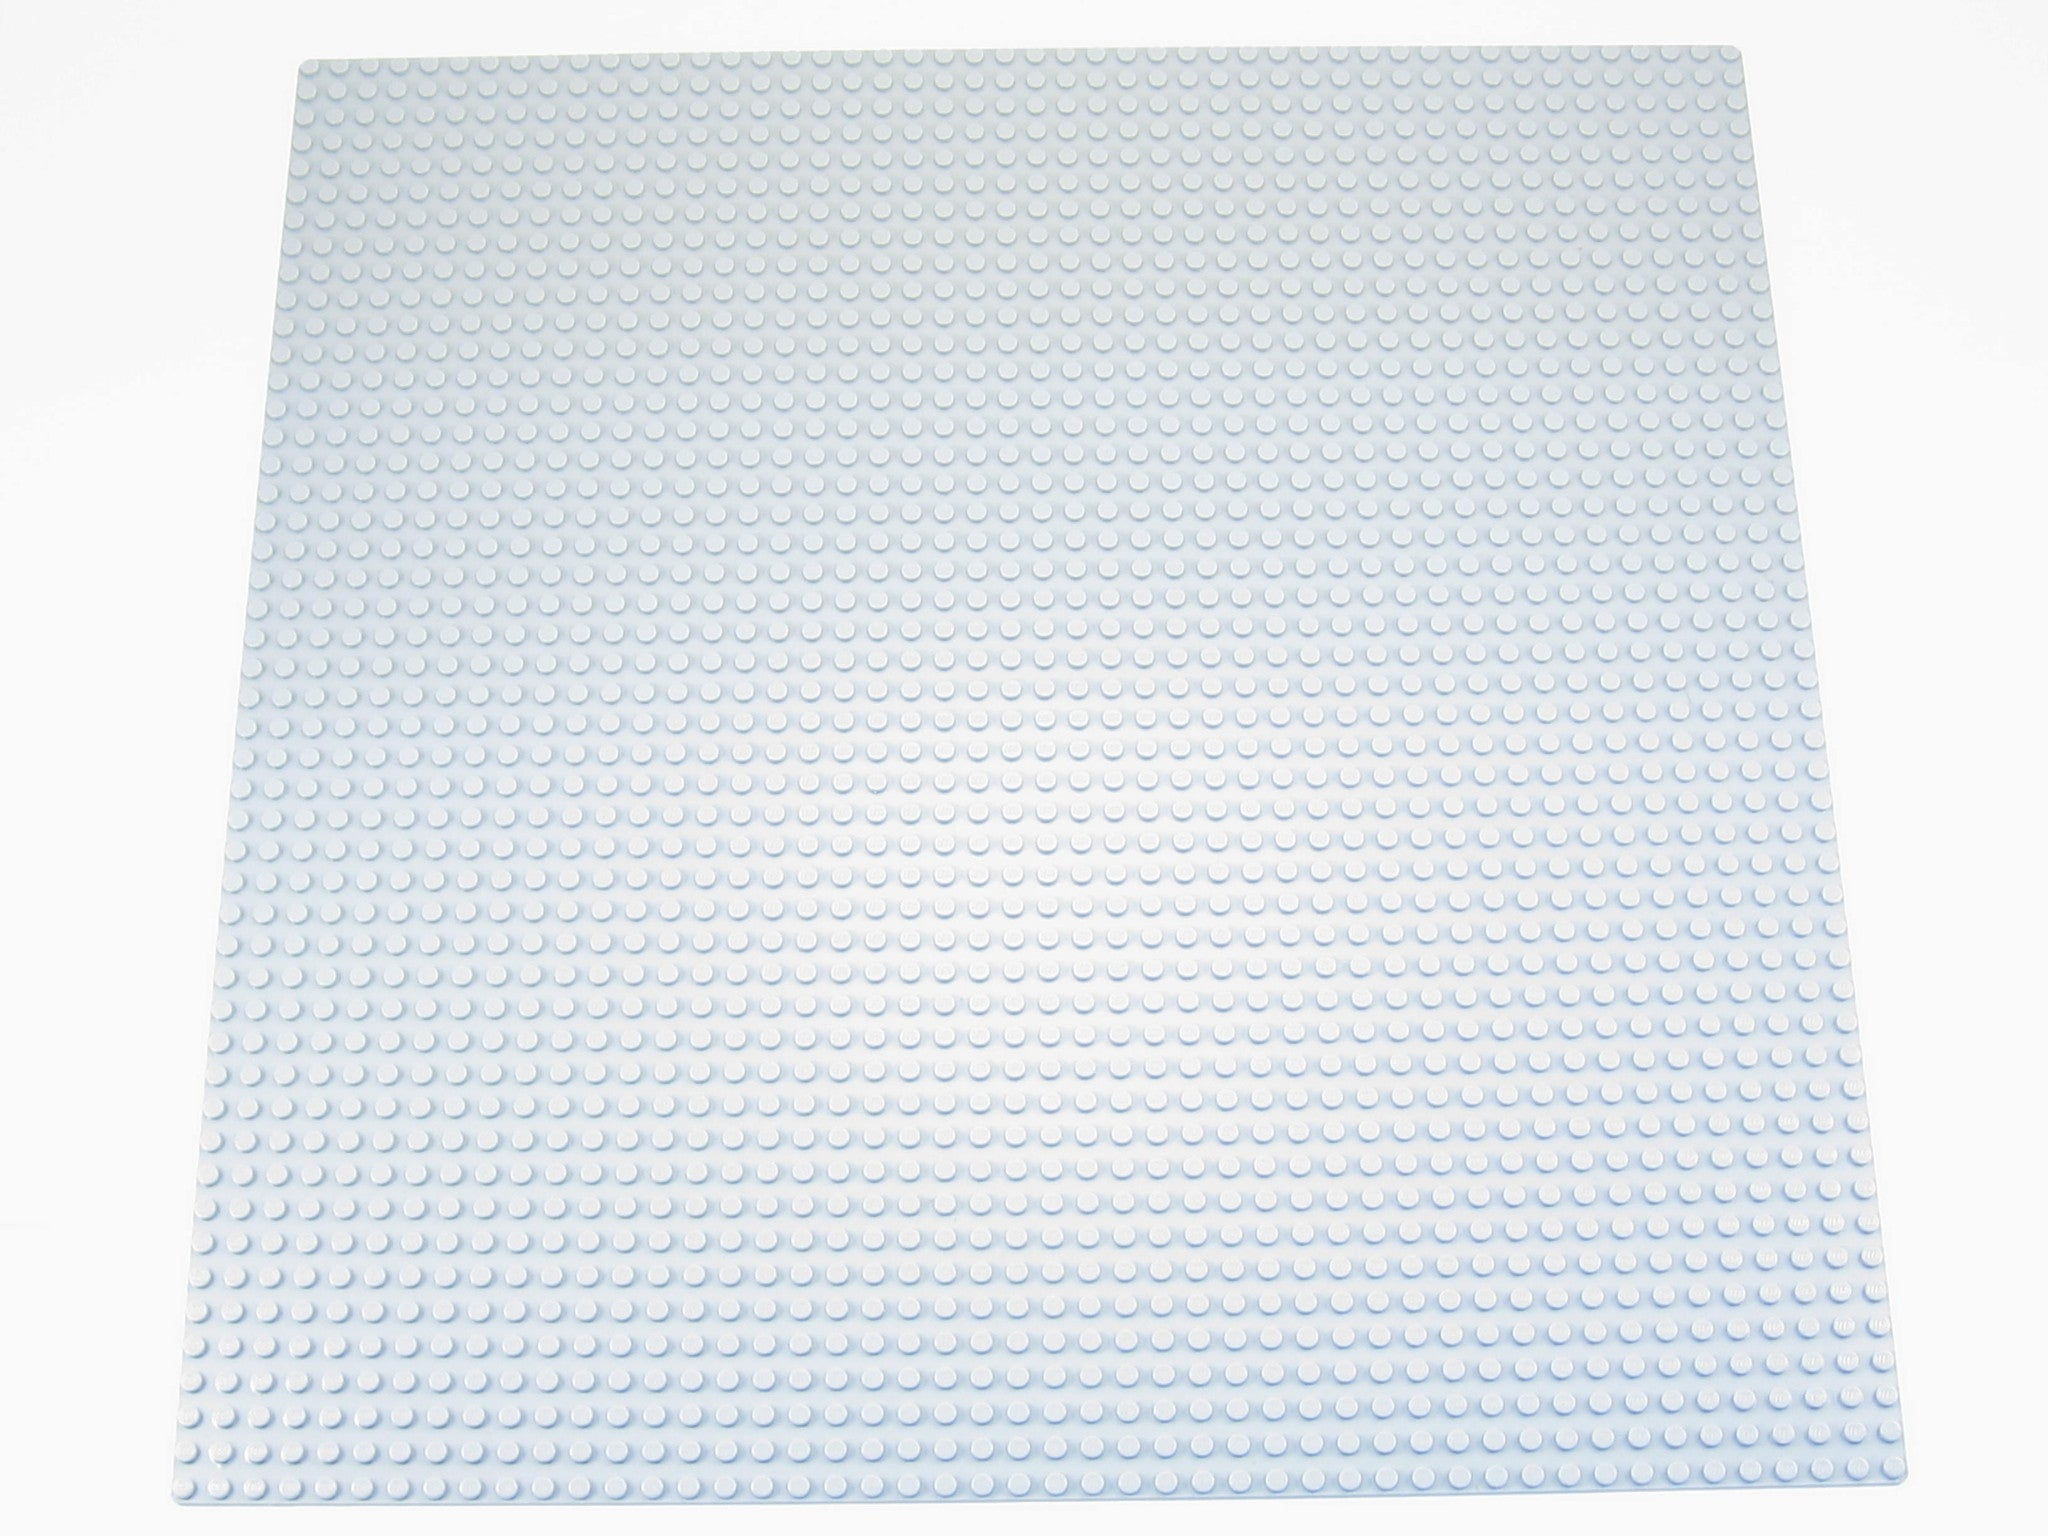 LEGO Lt. Bluish Grey Baseplate 48x48 Part Piece 4186 Base Plate